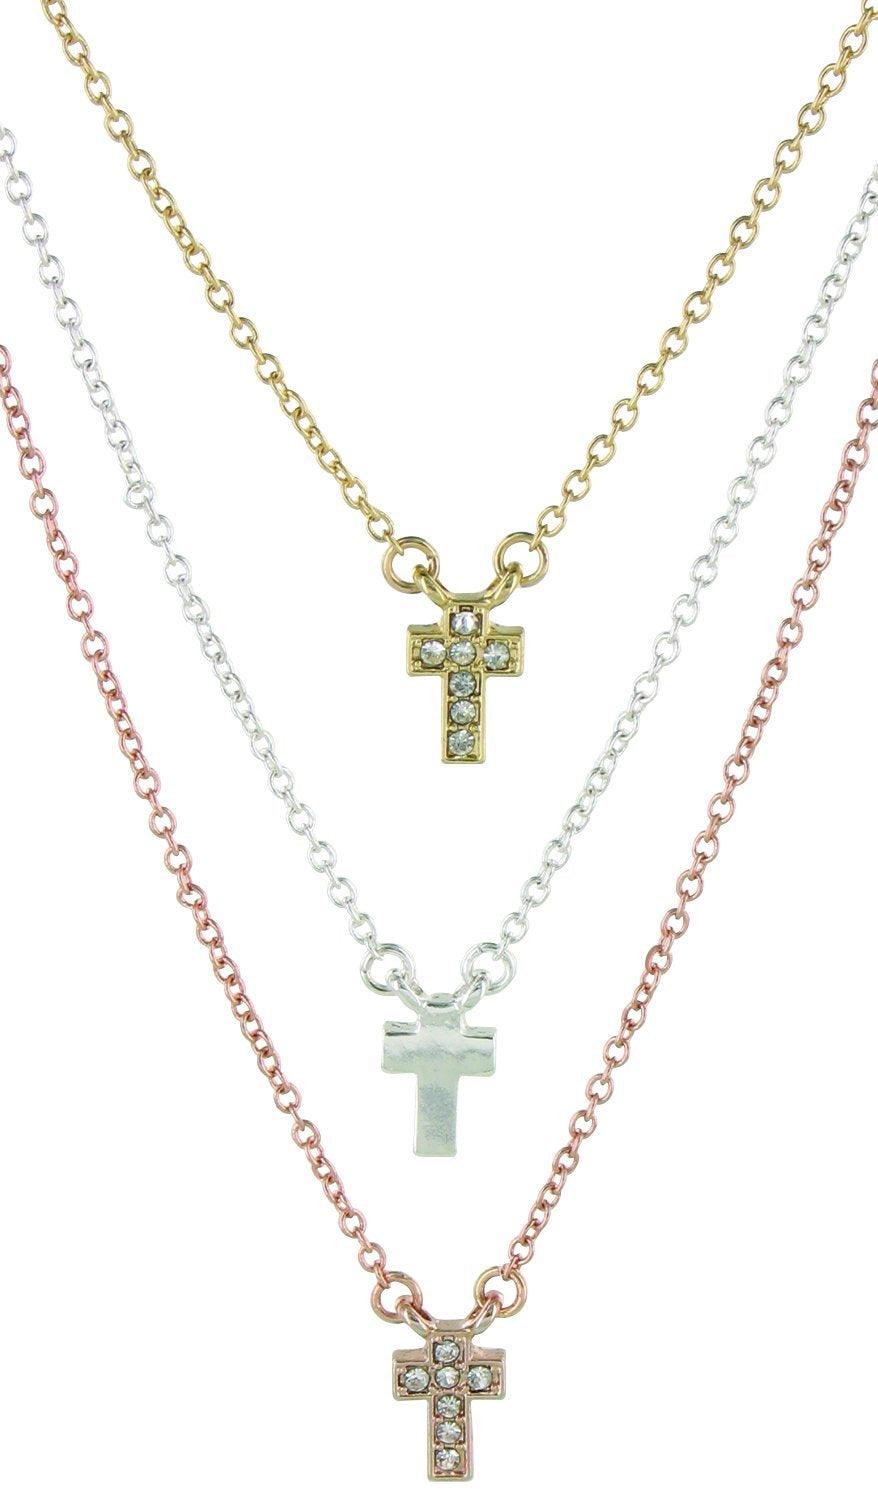 Triple Blessings Tri-Tone Cross Necklace